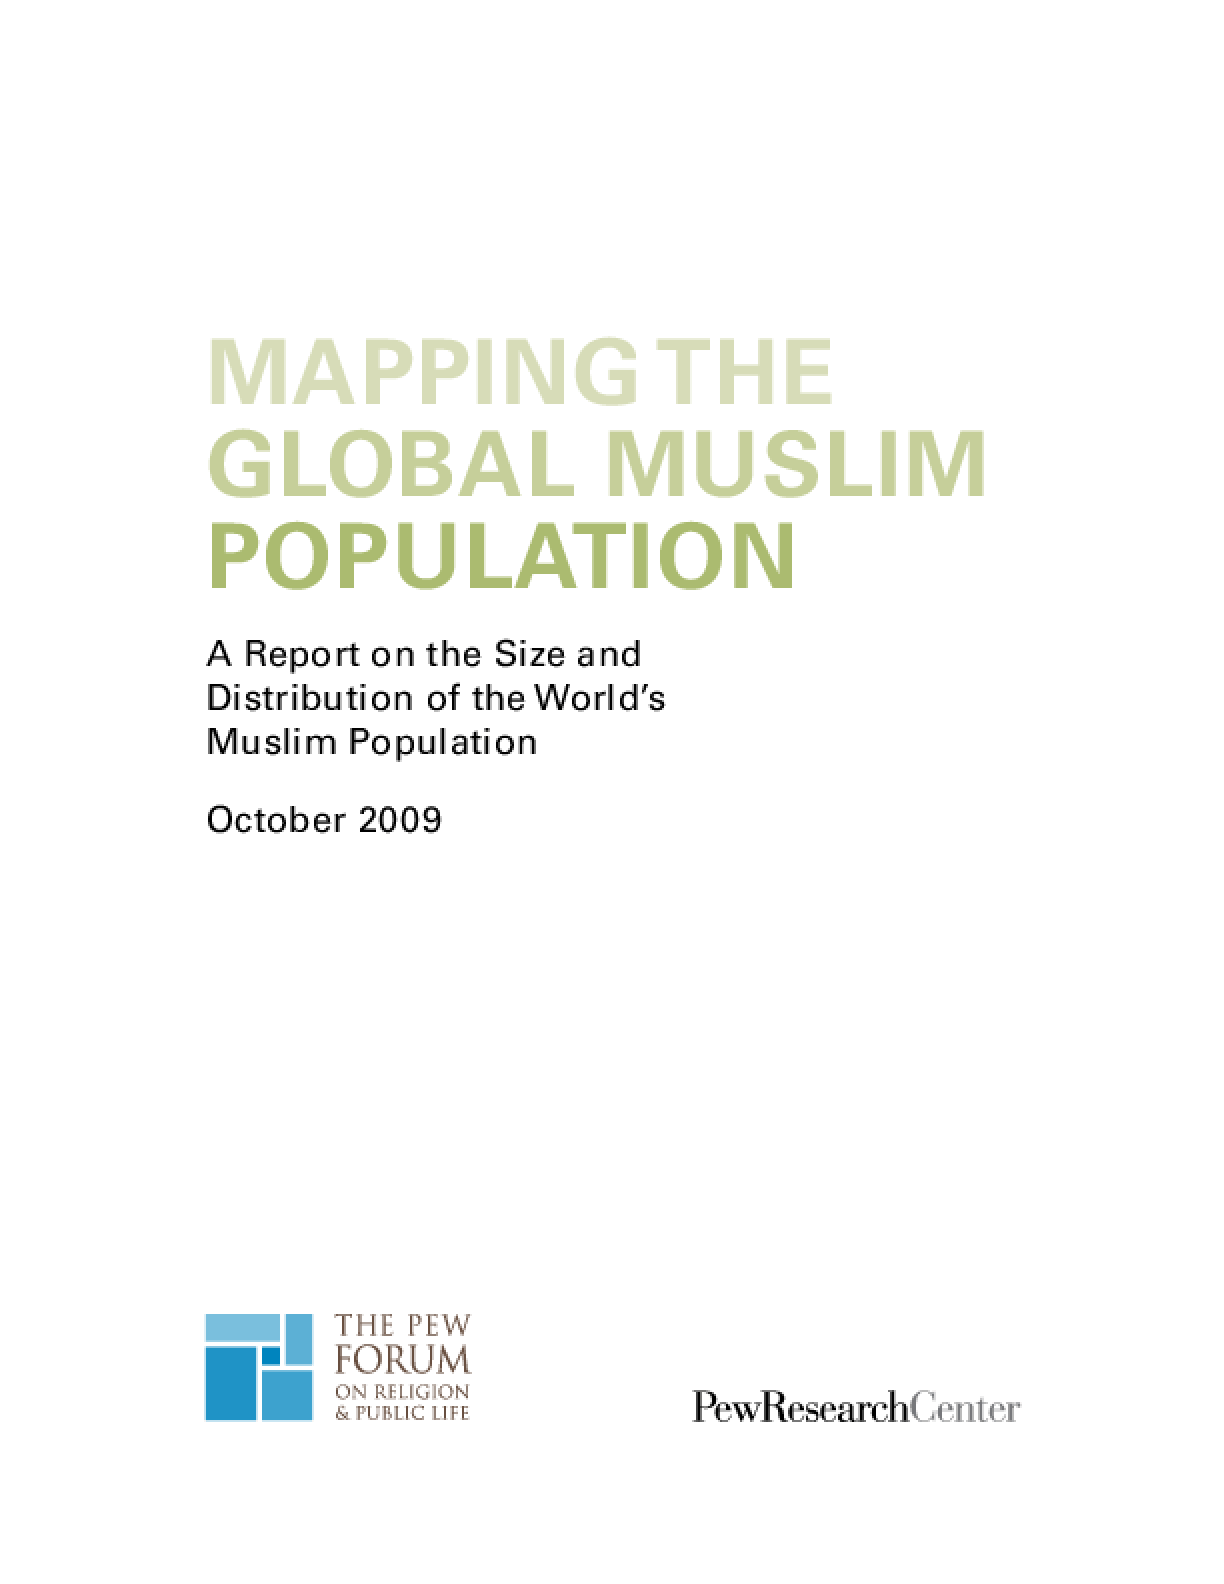 Mapping the Global Muslim Population: A Report on the Size and Distribution of the World's Muslim Population